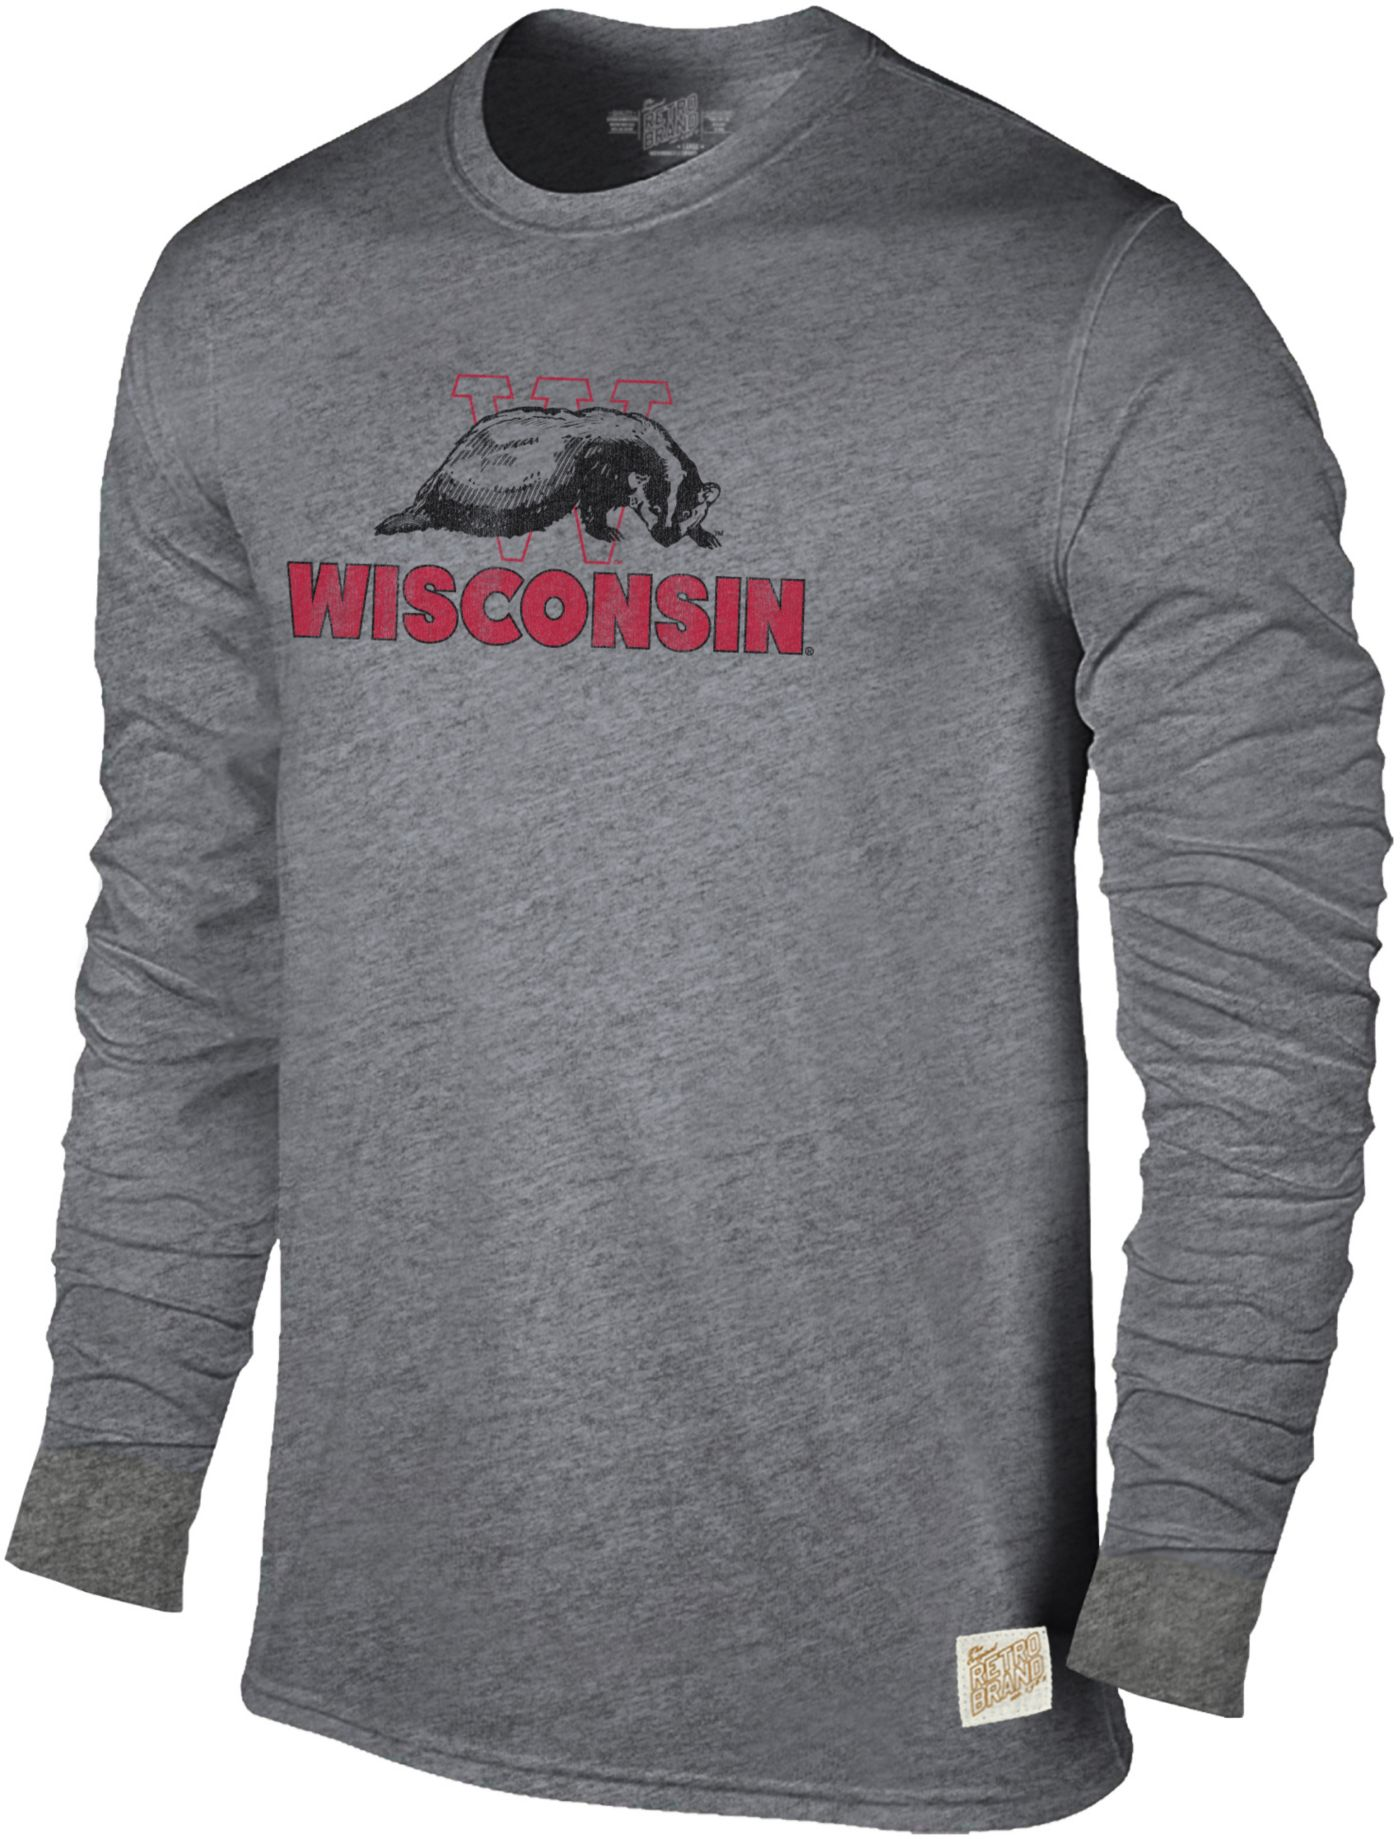 Original Retro Brand Men's Wisconsin Badgers Grey Tri-Blend Long Sleeve T-Shirt